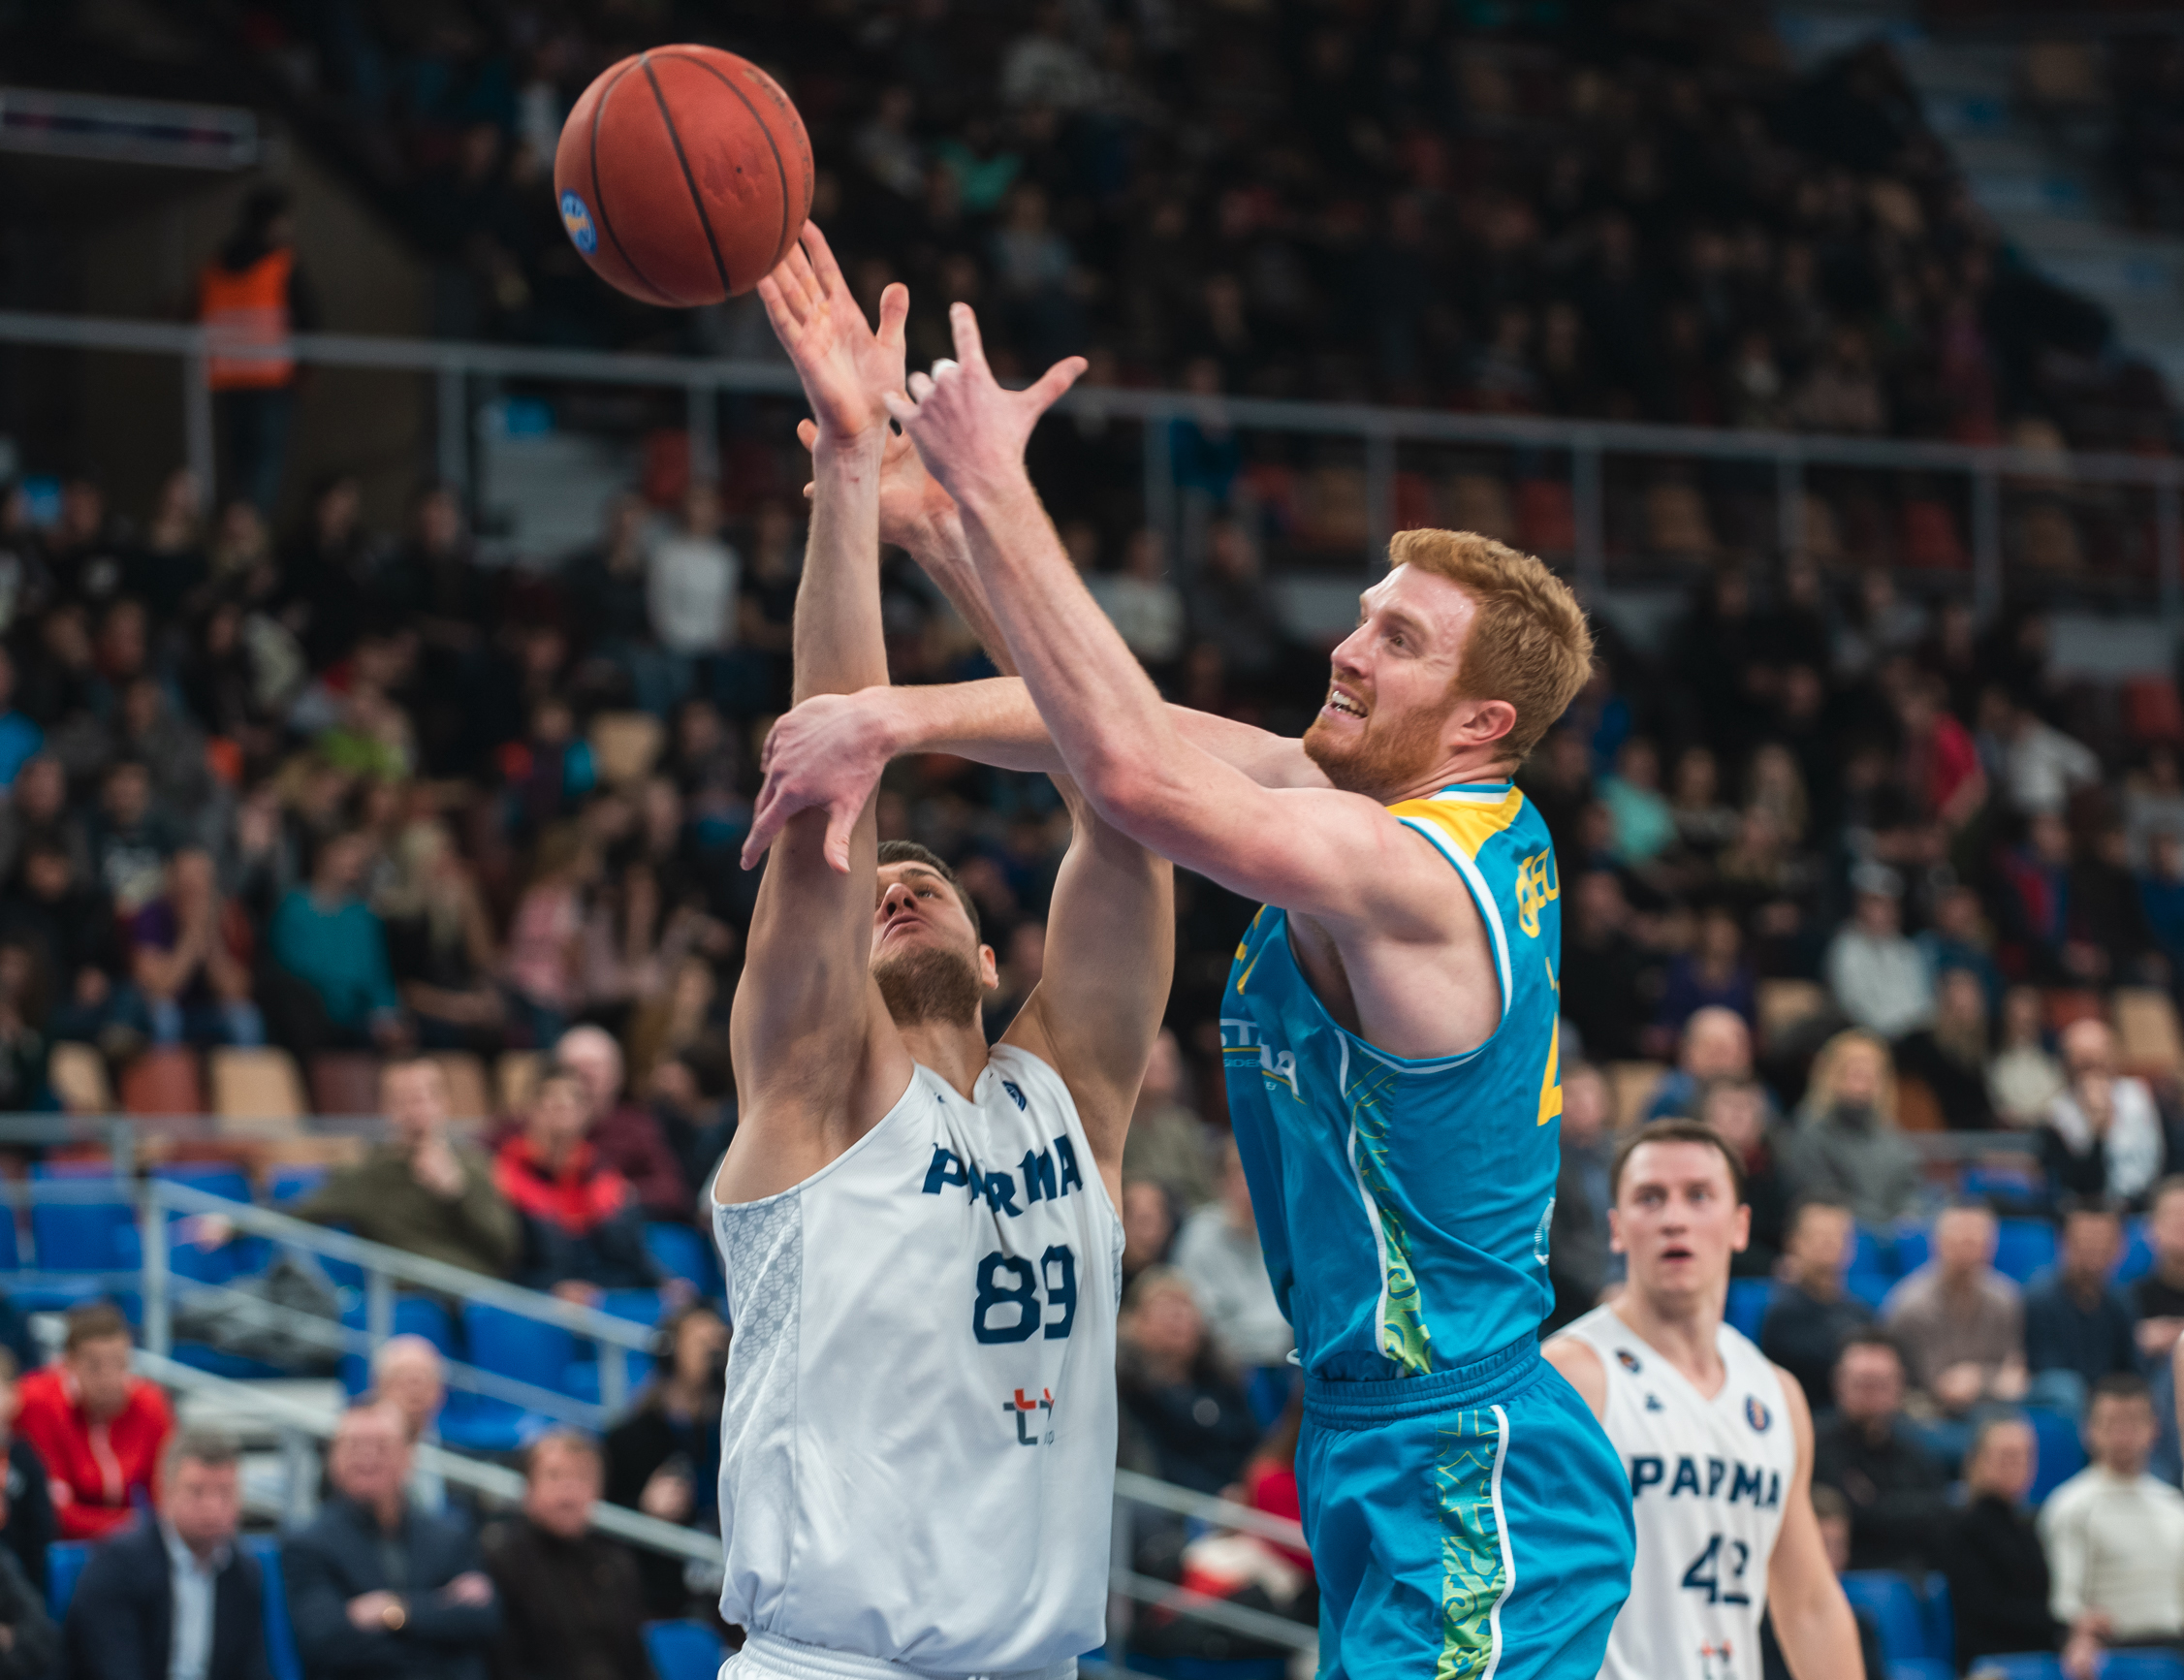 Astana Holds Off PARMA On The Road